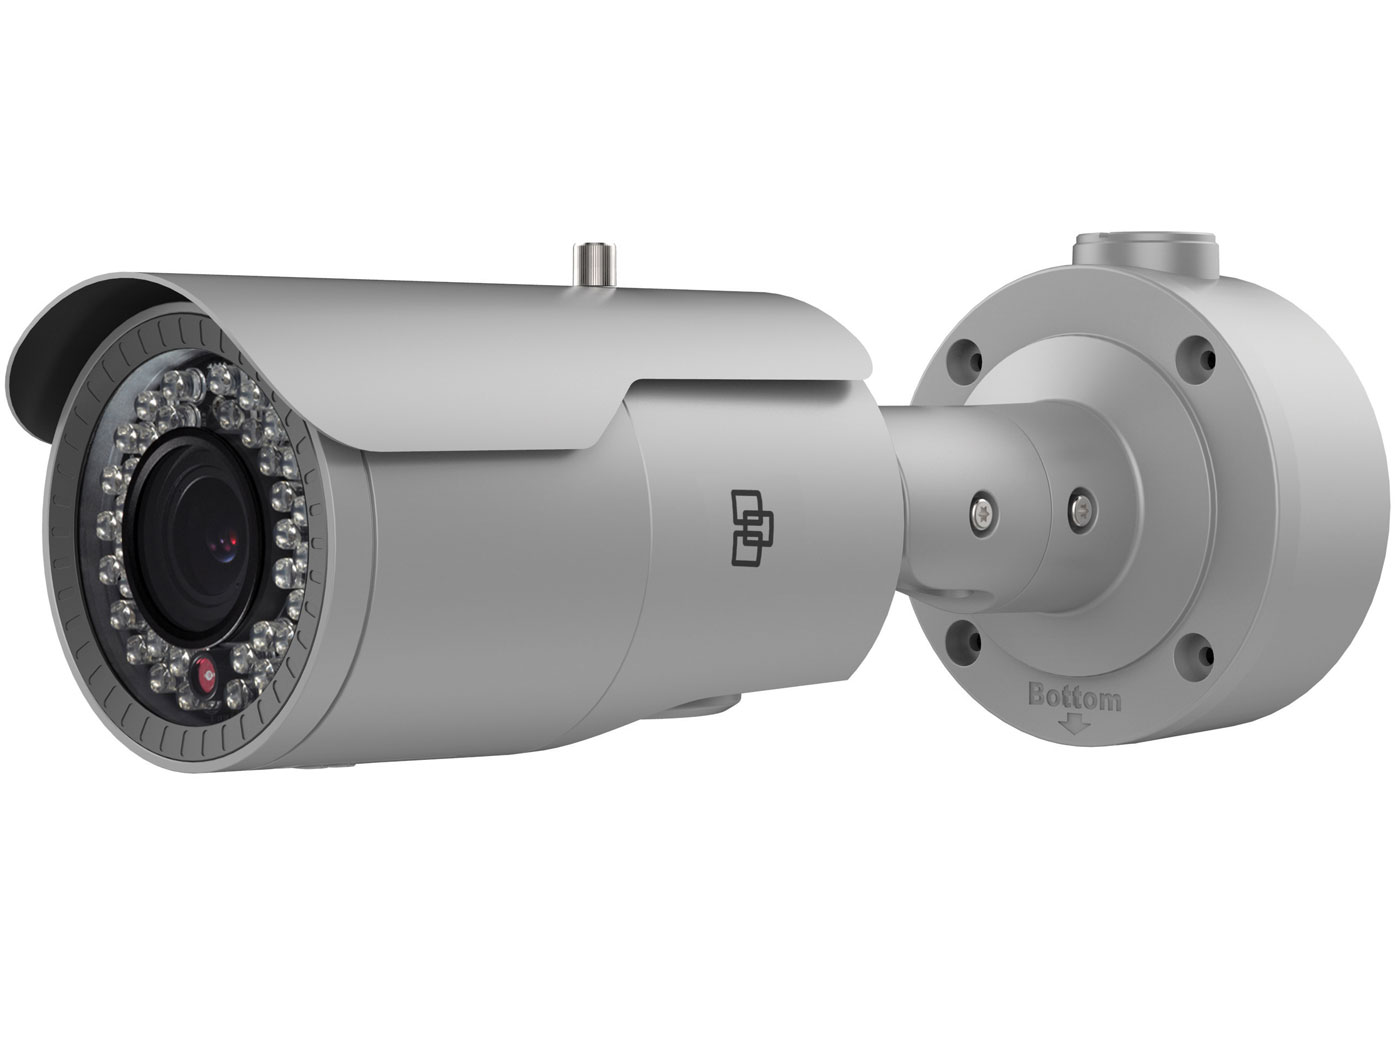 Truvision Hd Tvi Analog Bullet Cameras Video Solutions